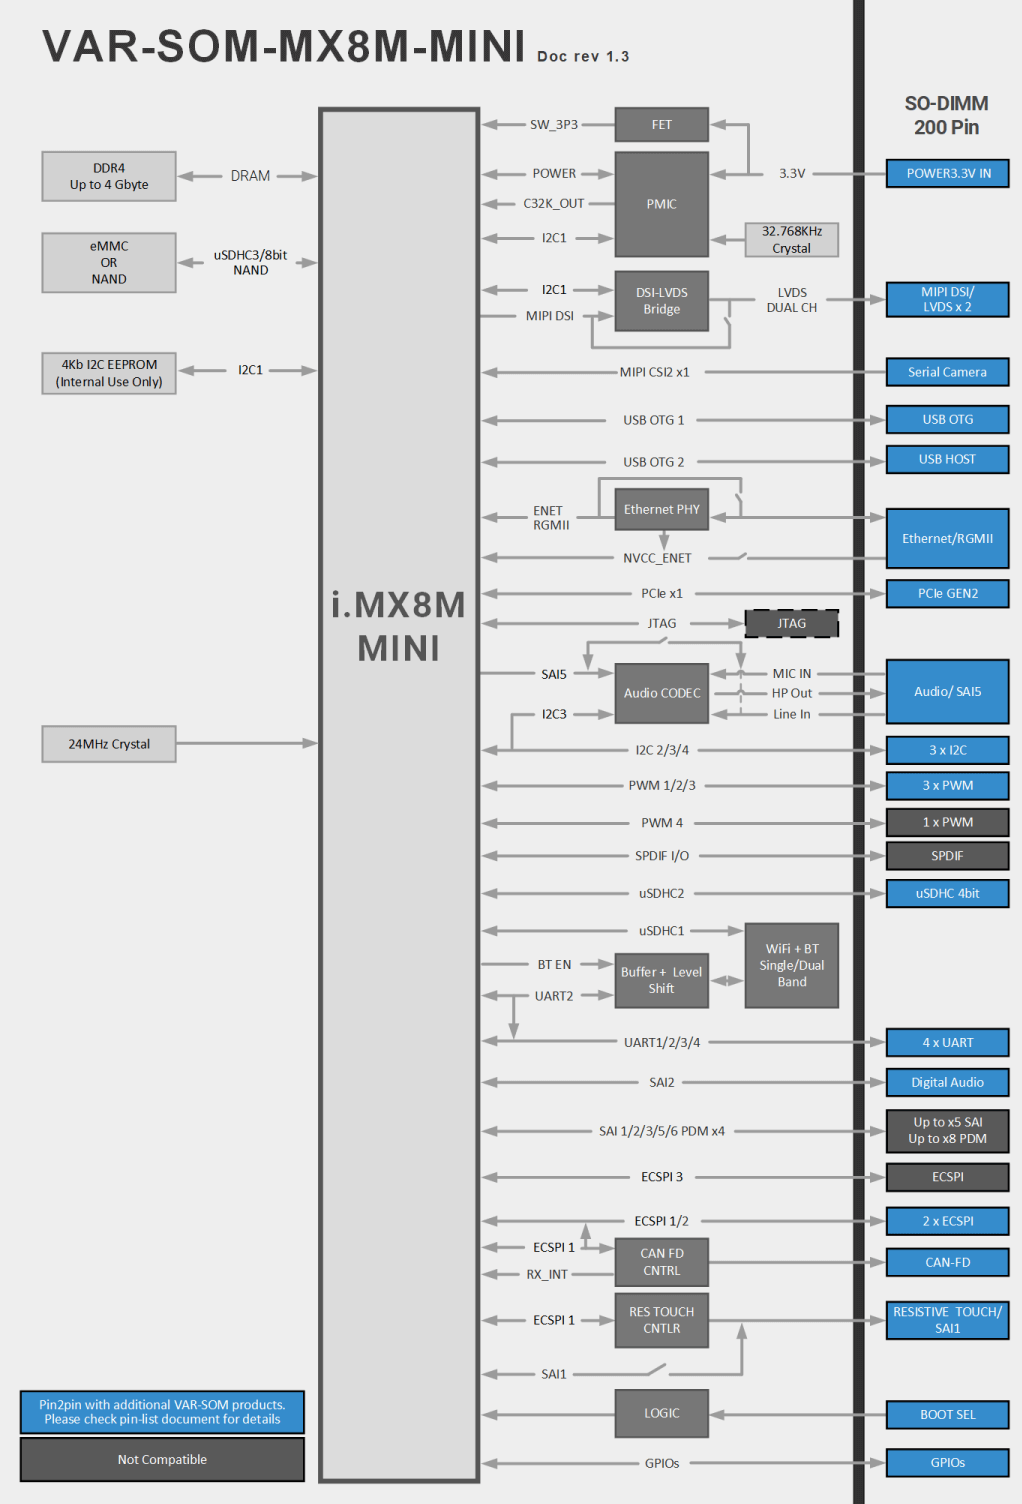 VAR-SOM-MX8M-MINI Block Diagram NXP i.MX8M Mini Diagram